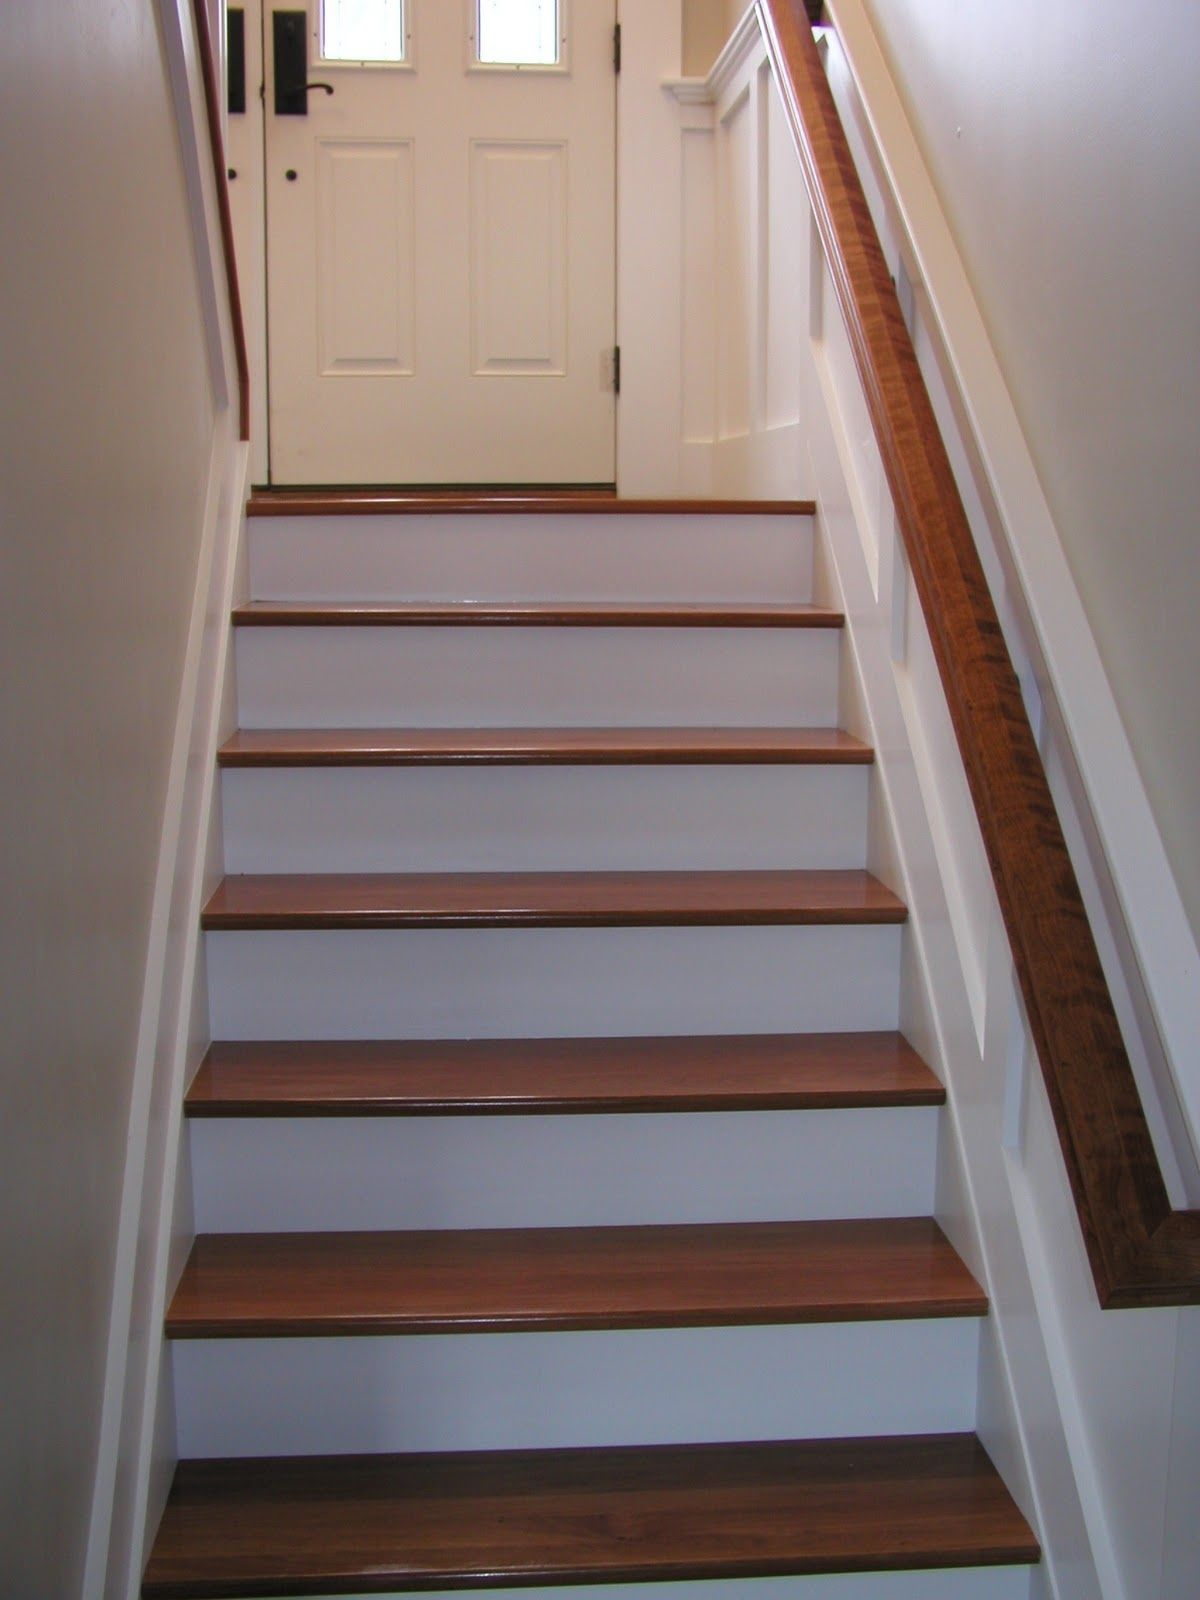 Horizontal Wainscoting In Stairs With Wood Handrail